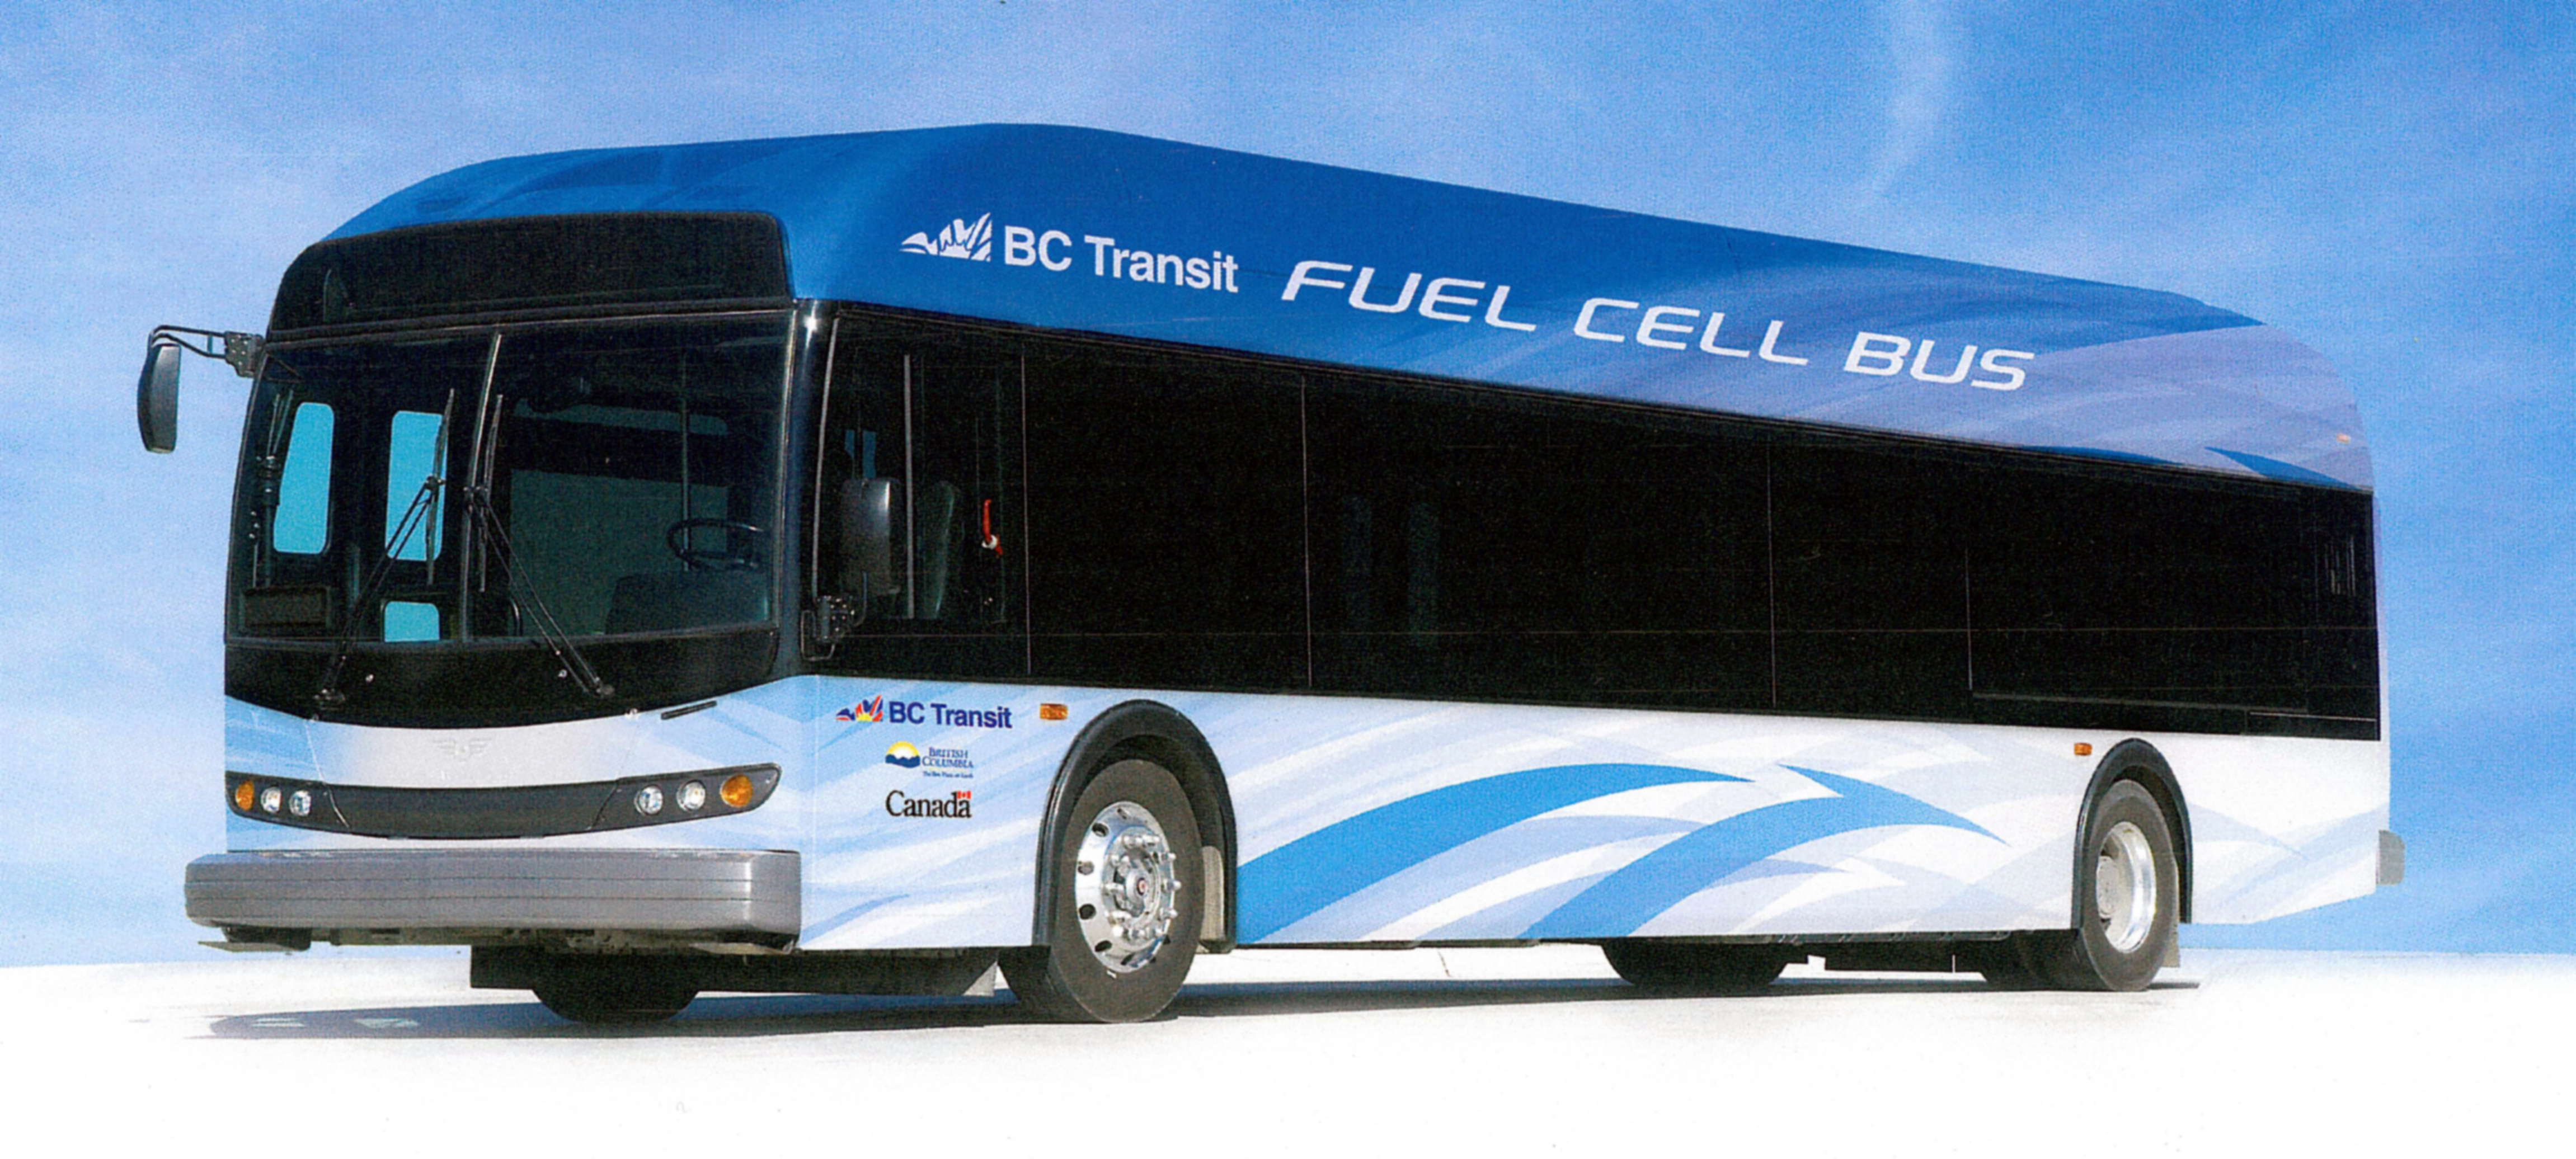 bctransit_fuel_cell_bus